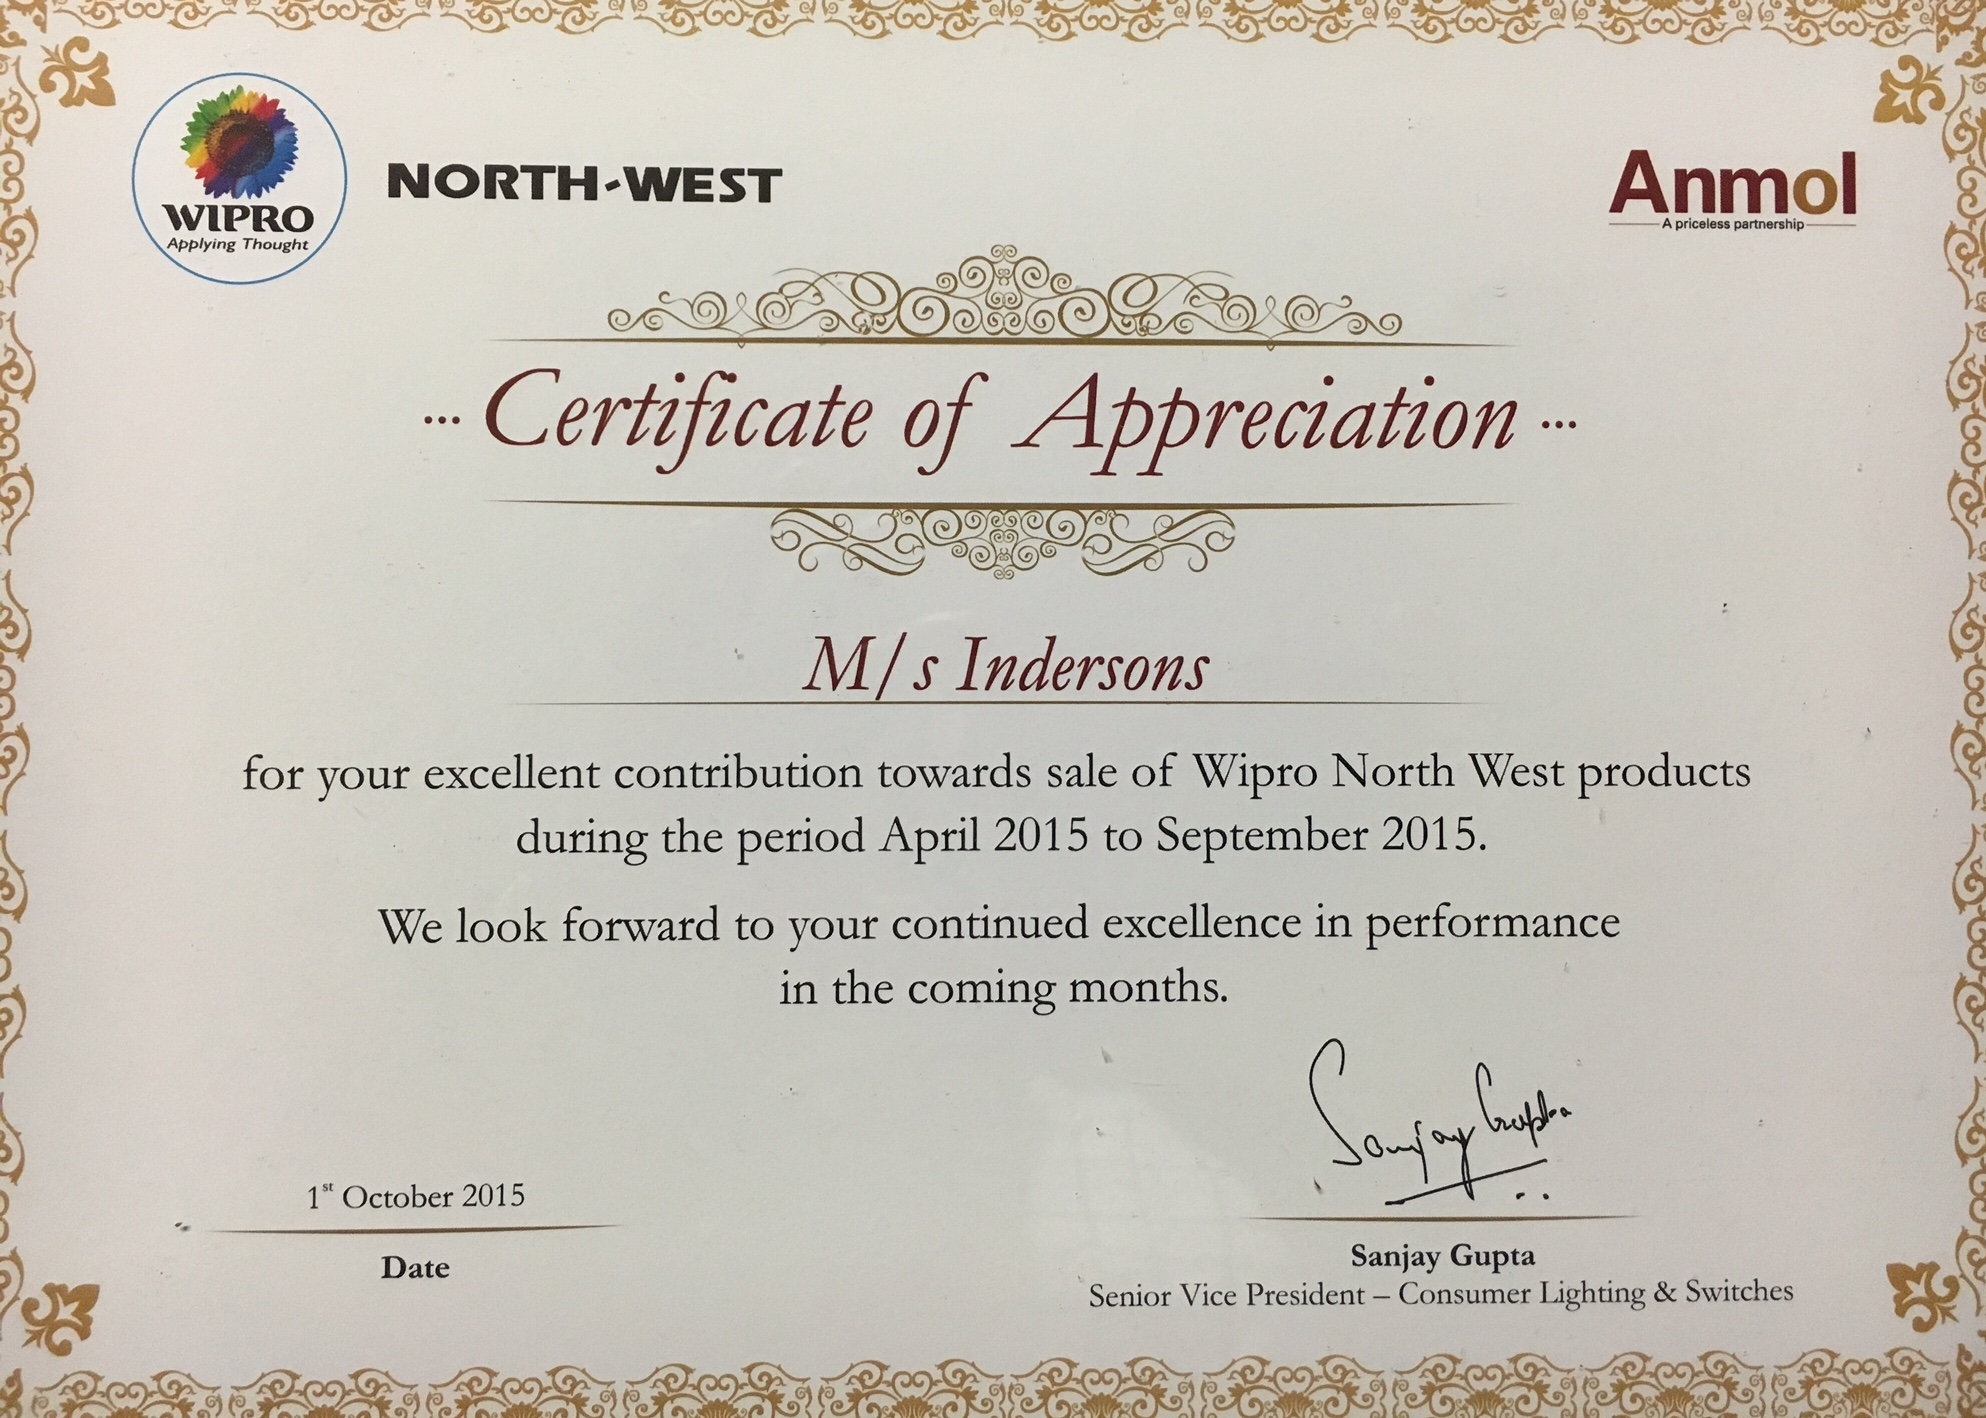 North-West Wipro Appreciation Letter - Oct2015